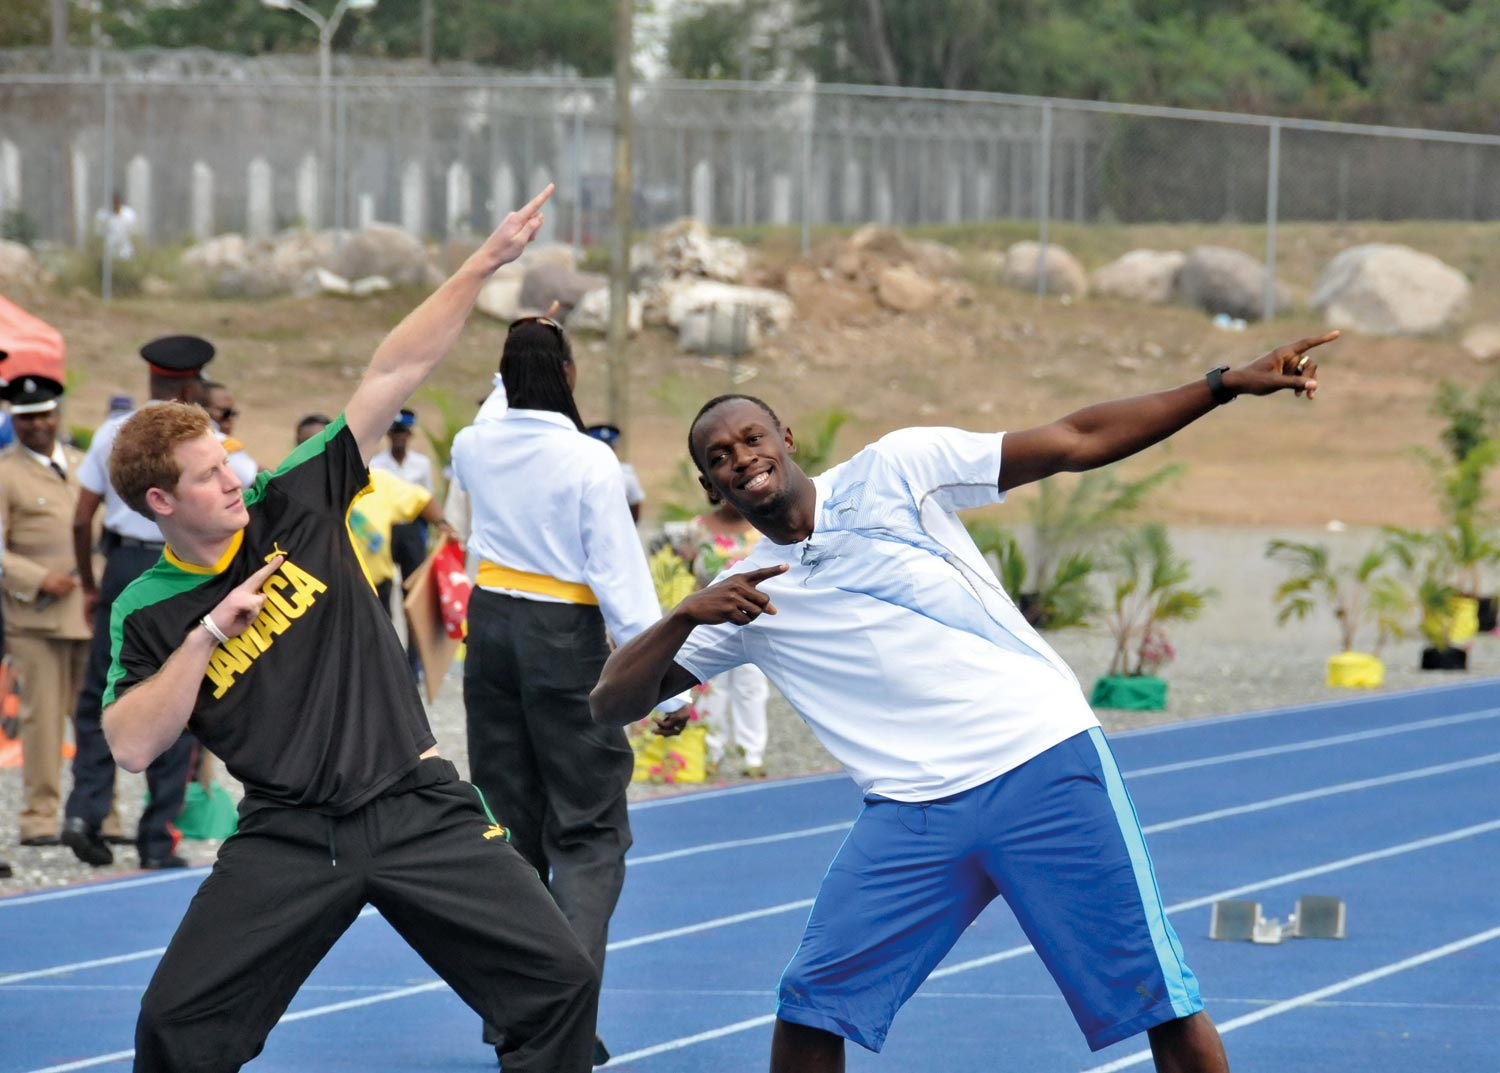 Prince Harry copies Usain Bolt's trademark move after their race in Jamaica earlier this year. Photograph by Aston Spaulding